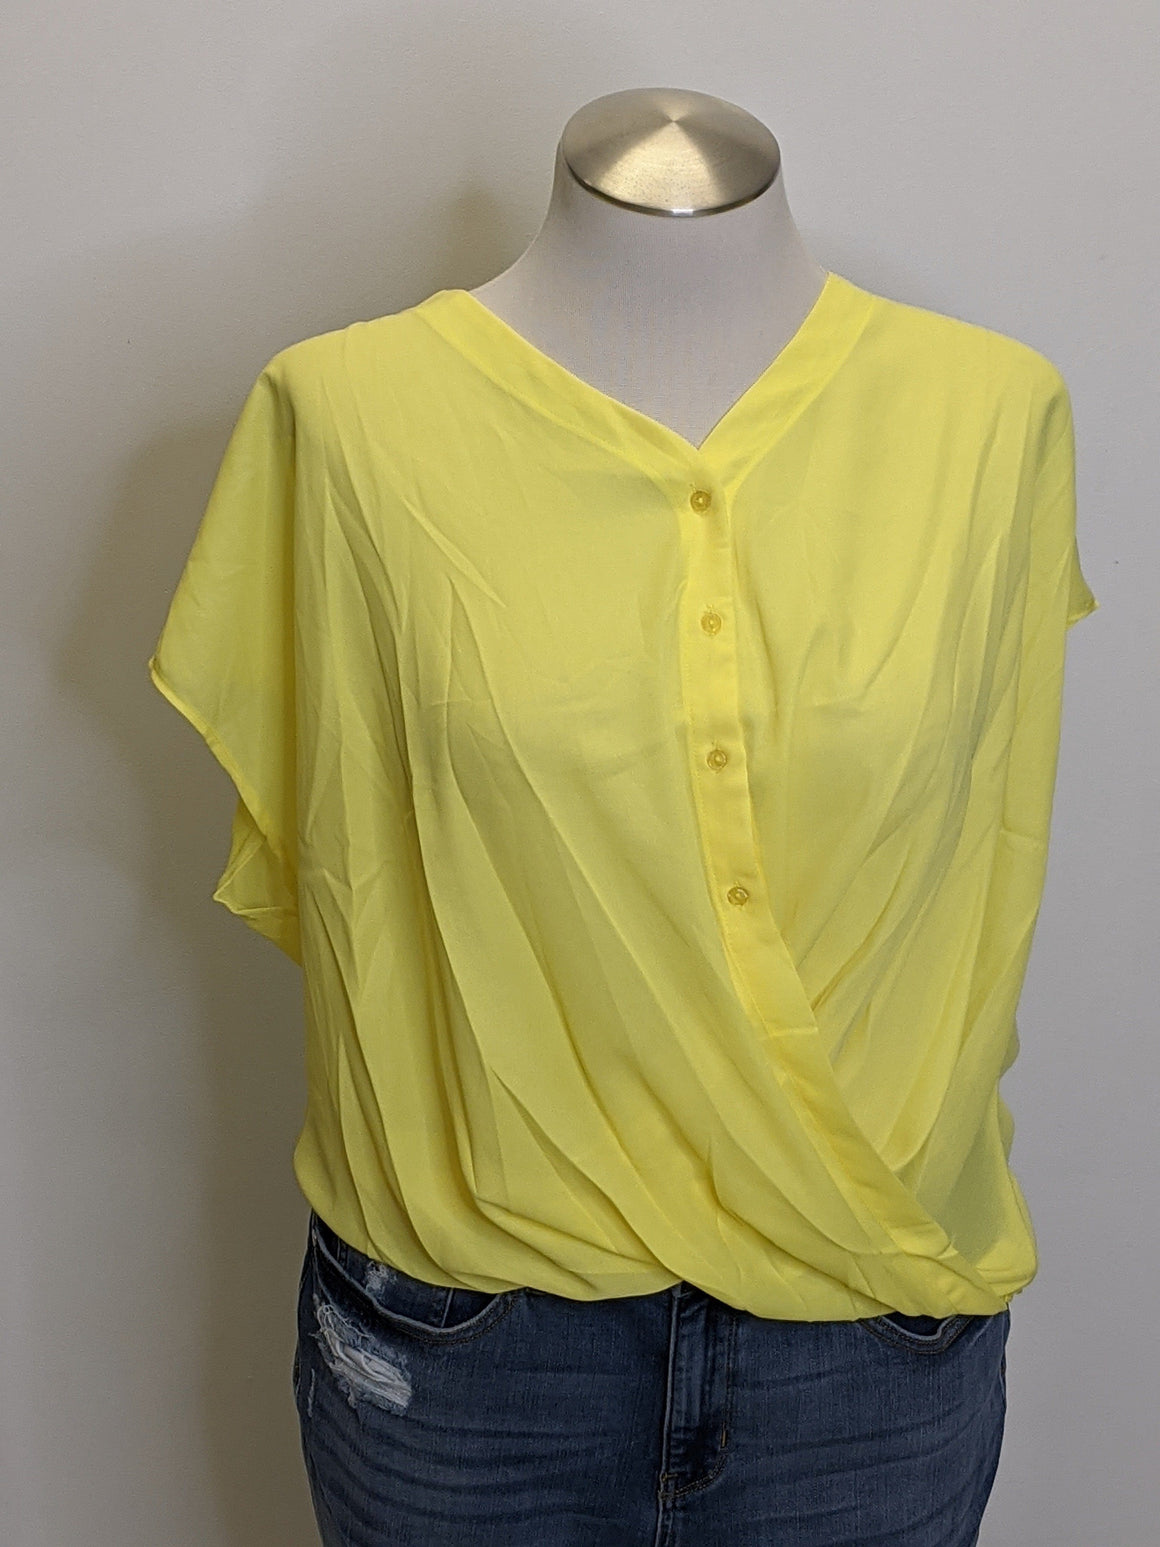 DRAPED CROSSOVER TOP (MORE COLORS!) Tops ninexis